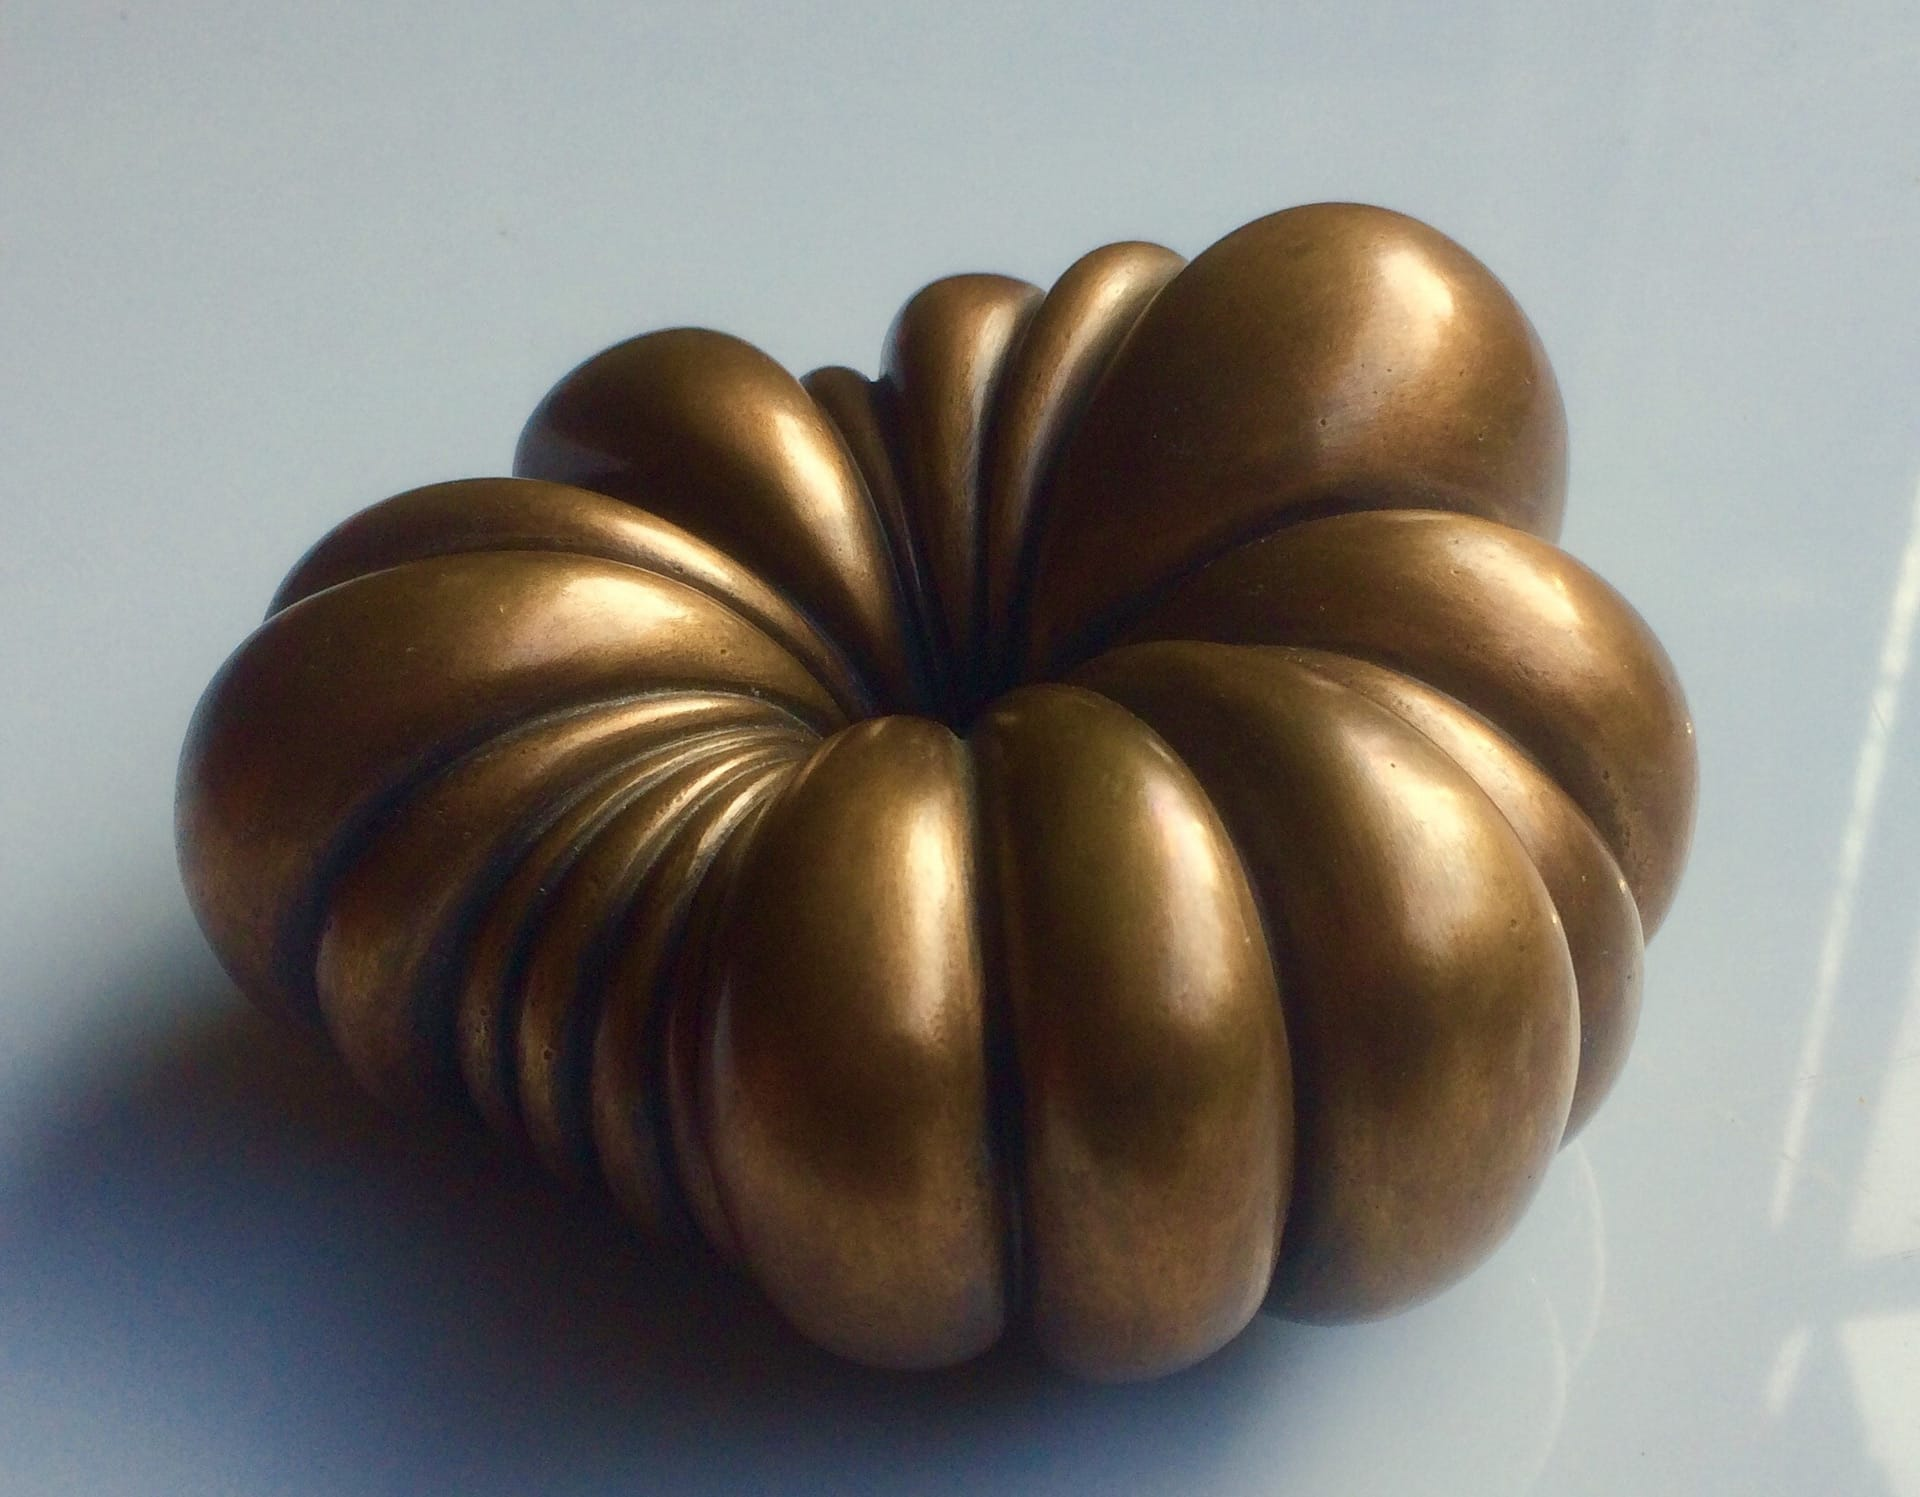 Sven Rünger: Inside out, 2017 (Bronze)